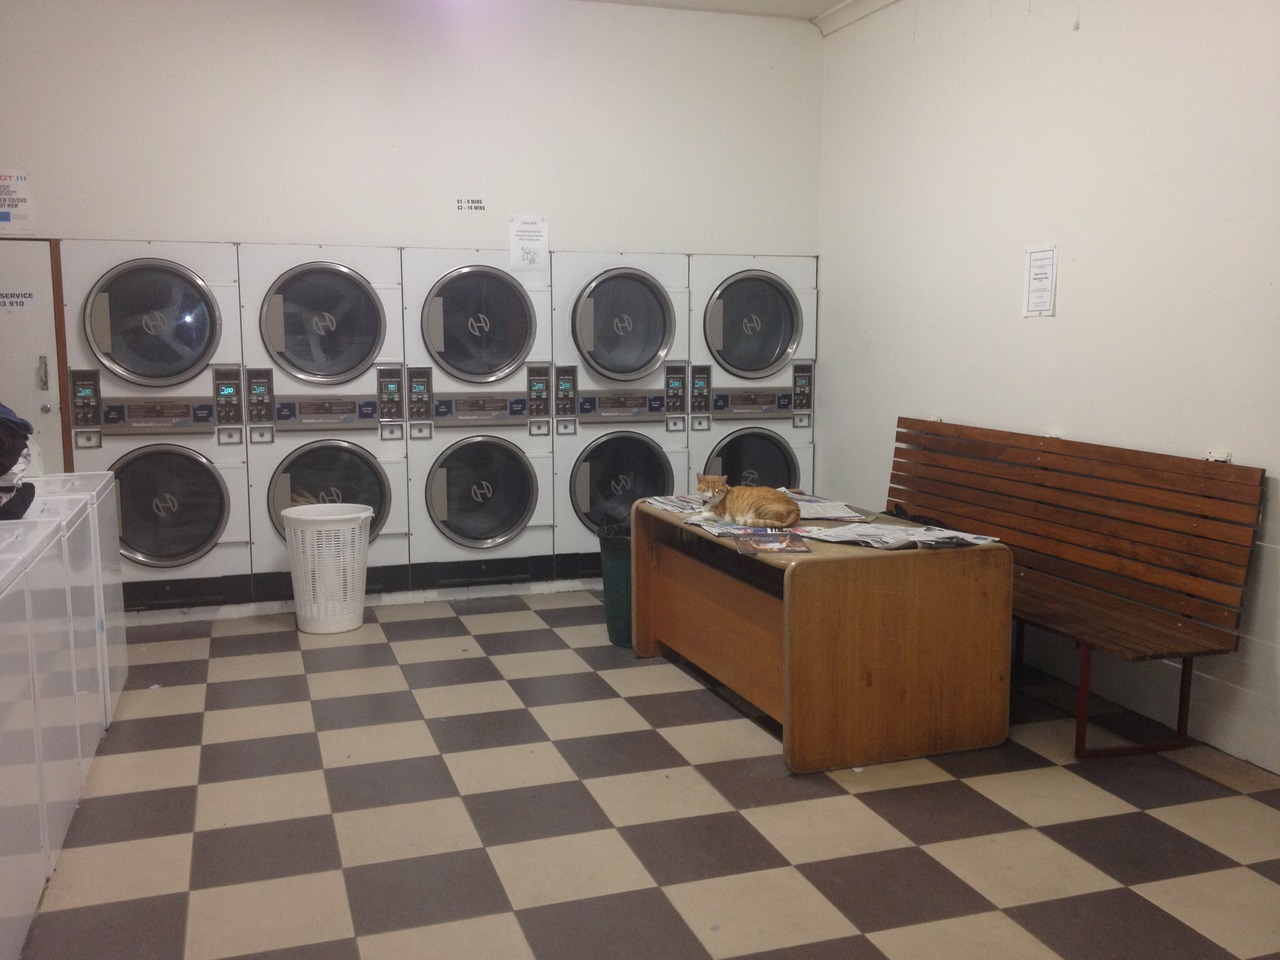 Laundromat cat cares for your cleanliness